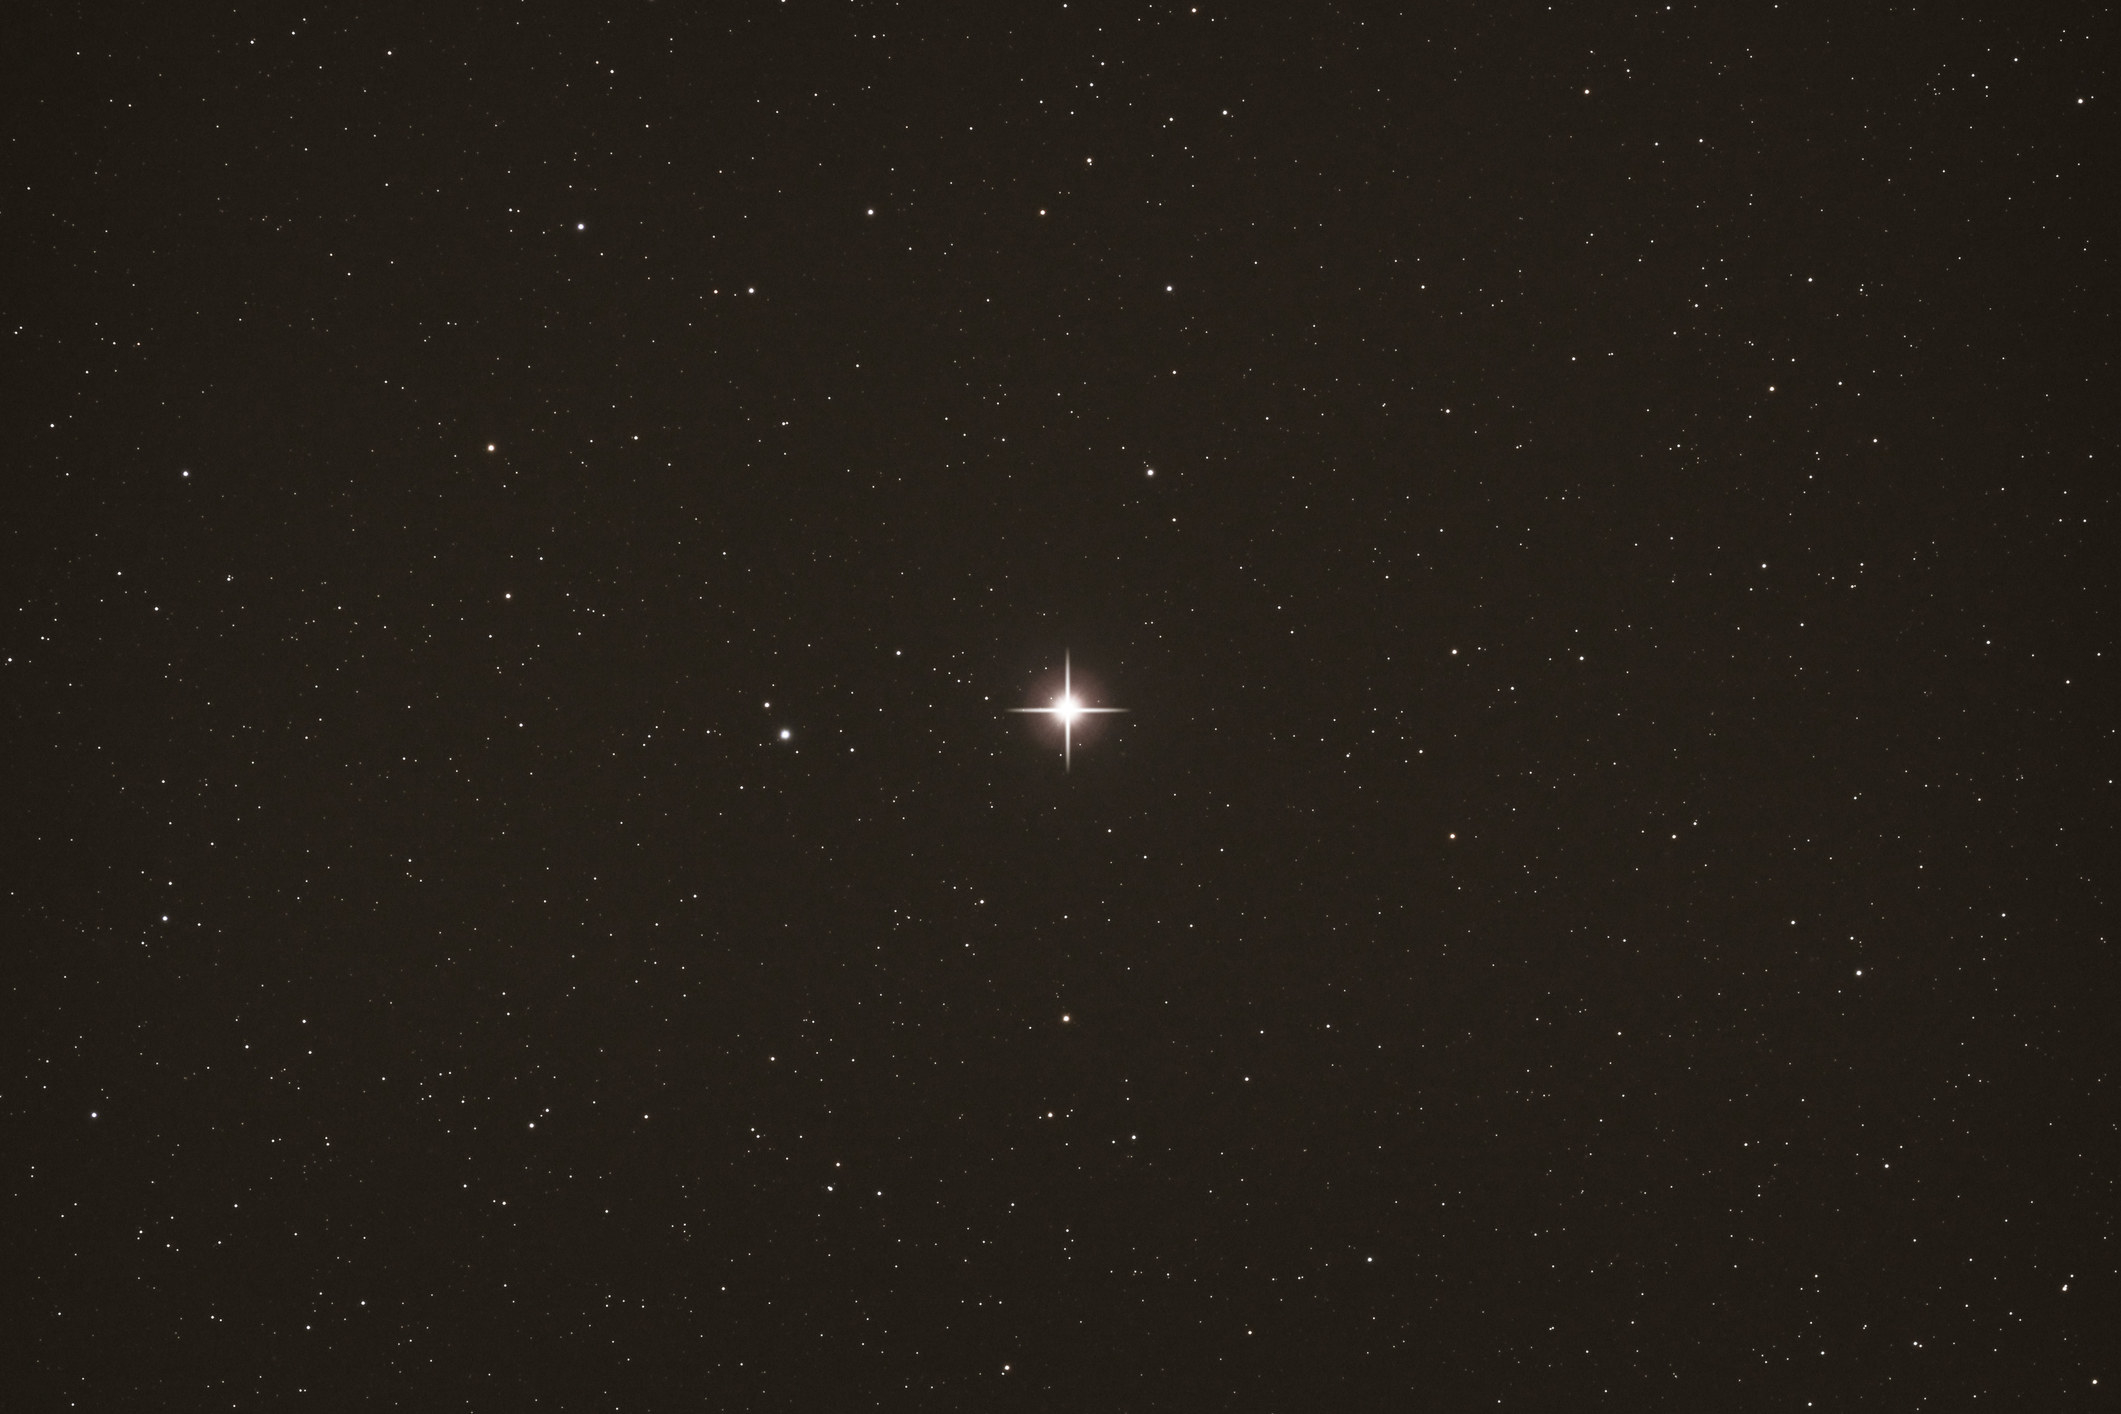 A night sky speckled with stars, with polaris in the dead center shining brightest